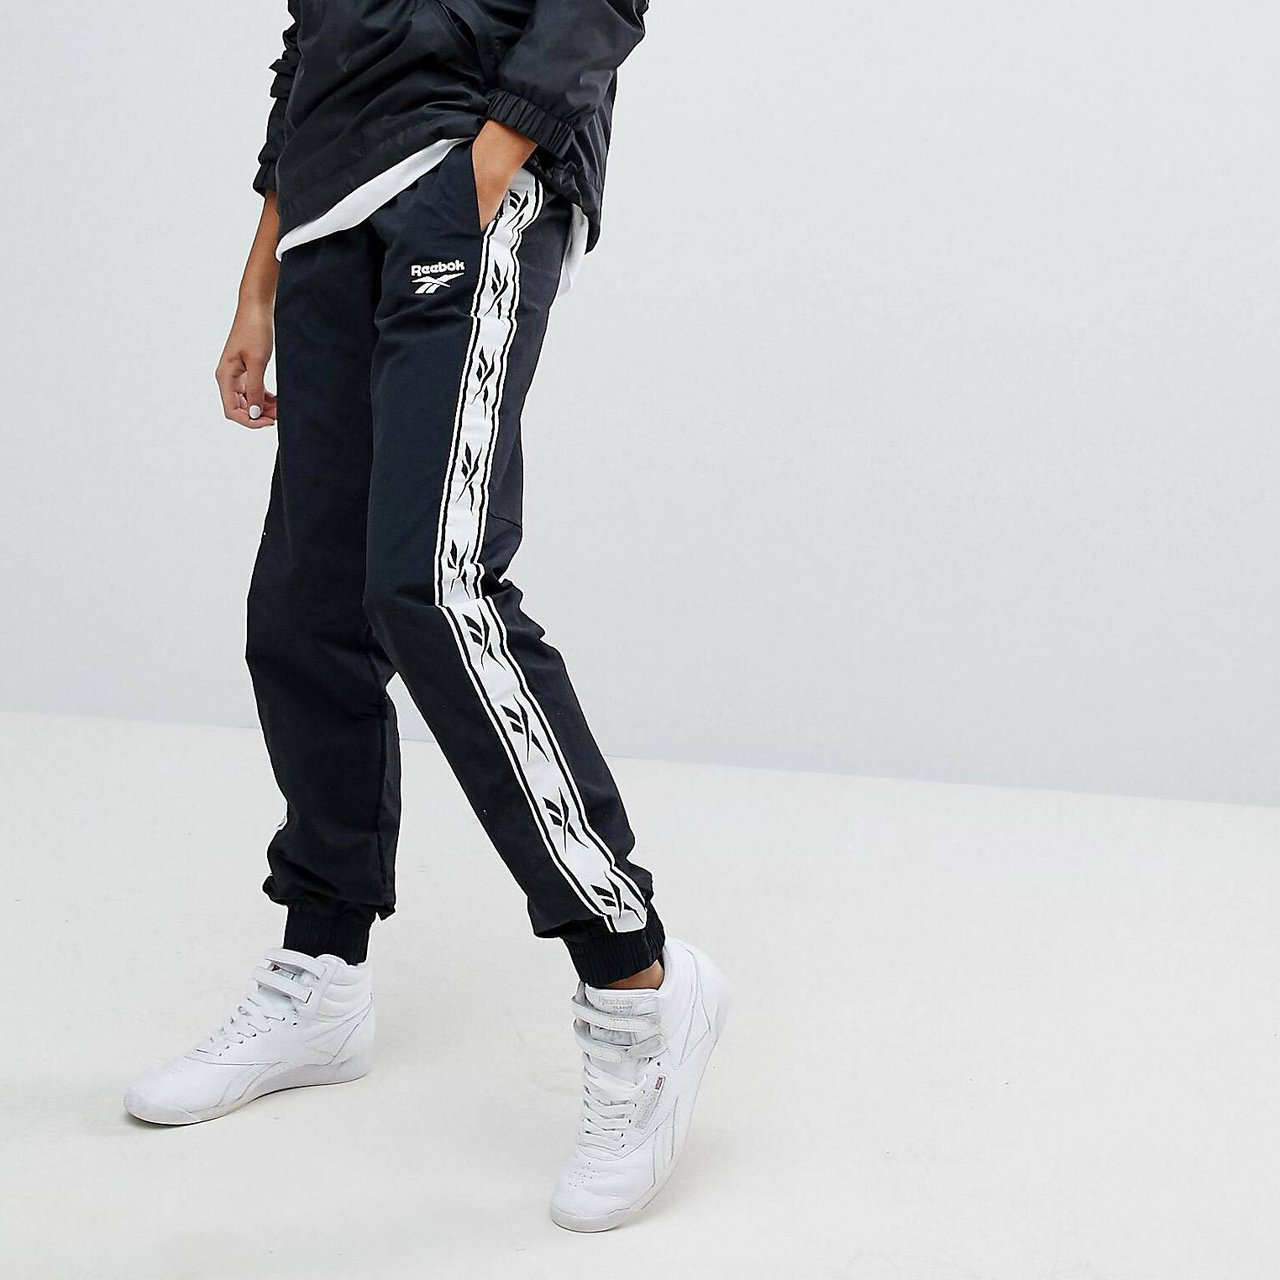 SOLD OUT REEBOK CLASSIC TRACK PANTS Black and white reebok a - Depop 5e10fb5d6d49